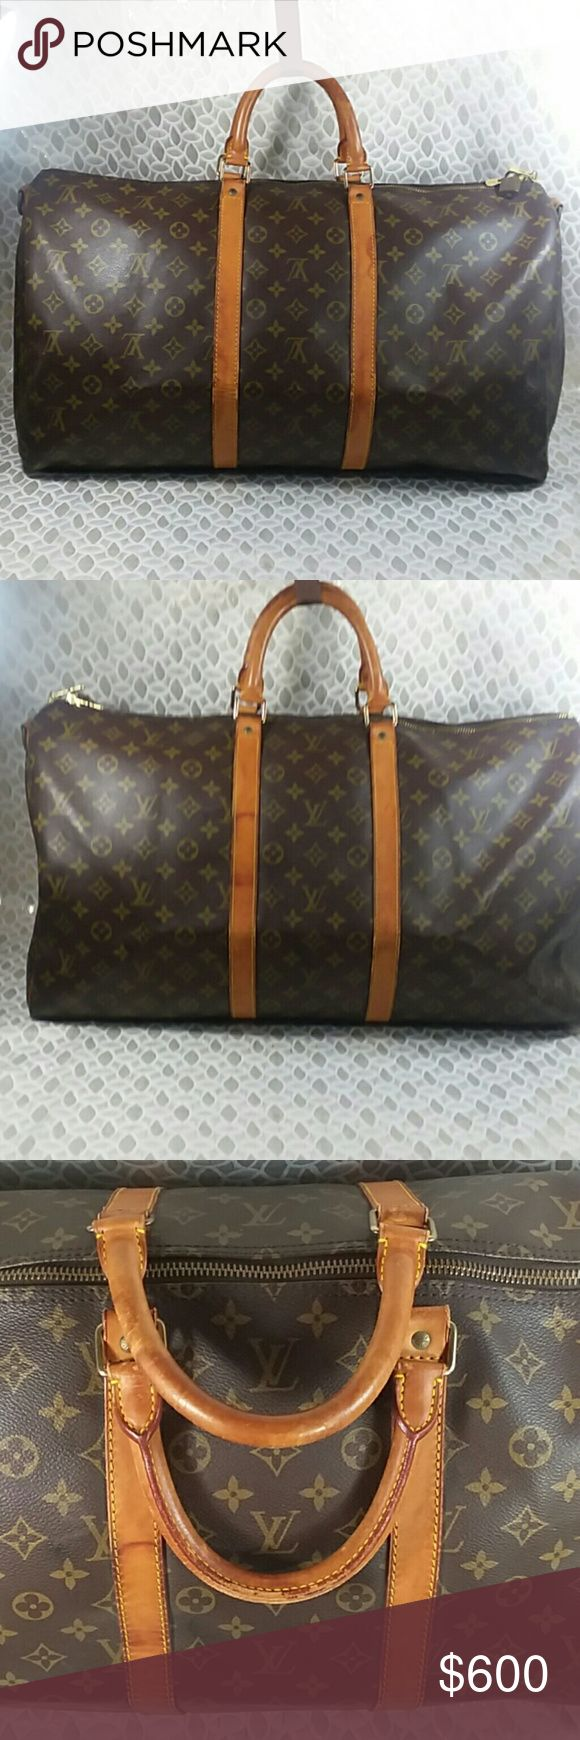 Authentic Louis Vuitton Monogram Keep All Bag. Straps and leather trim showed signs of used and had some stains as the bag was preowned. The bag was made in France with a date code SP 0994. Canvas and inside linen are good. The dimension is 22, 10 and 12. Louis Vuitton Bags Travel Bags